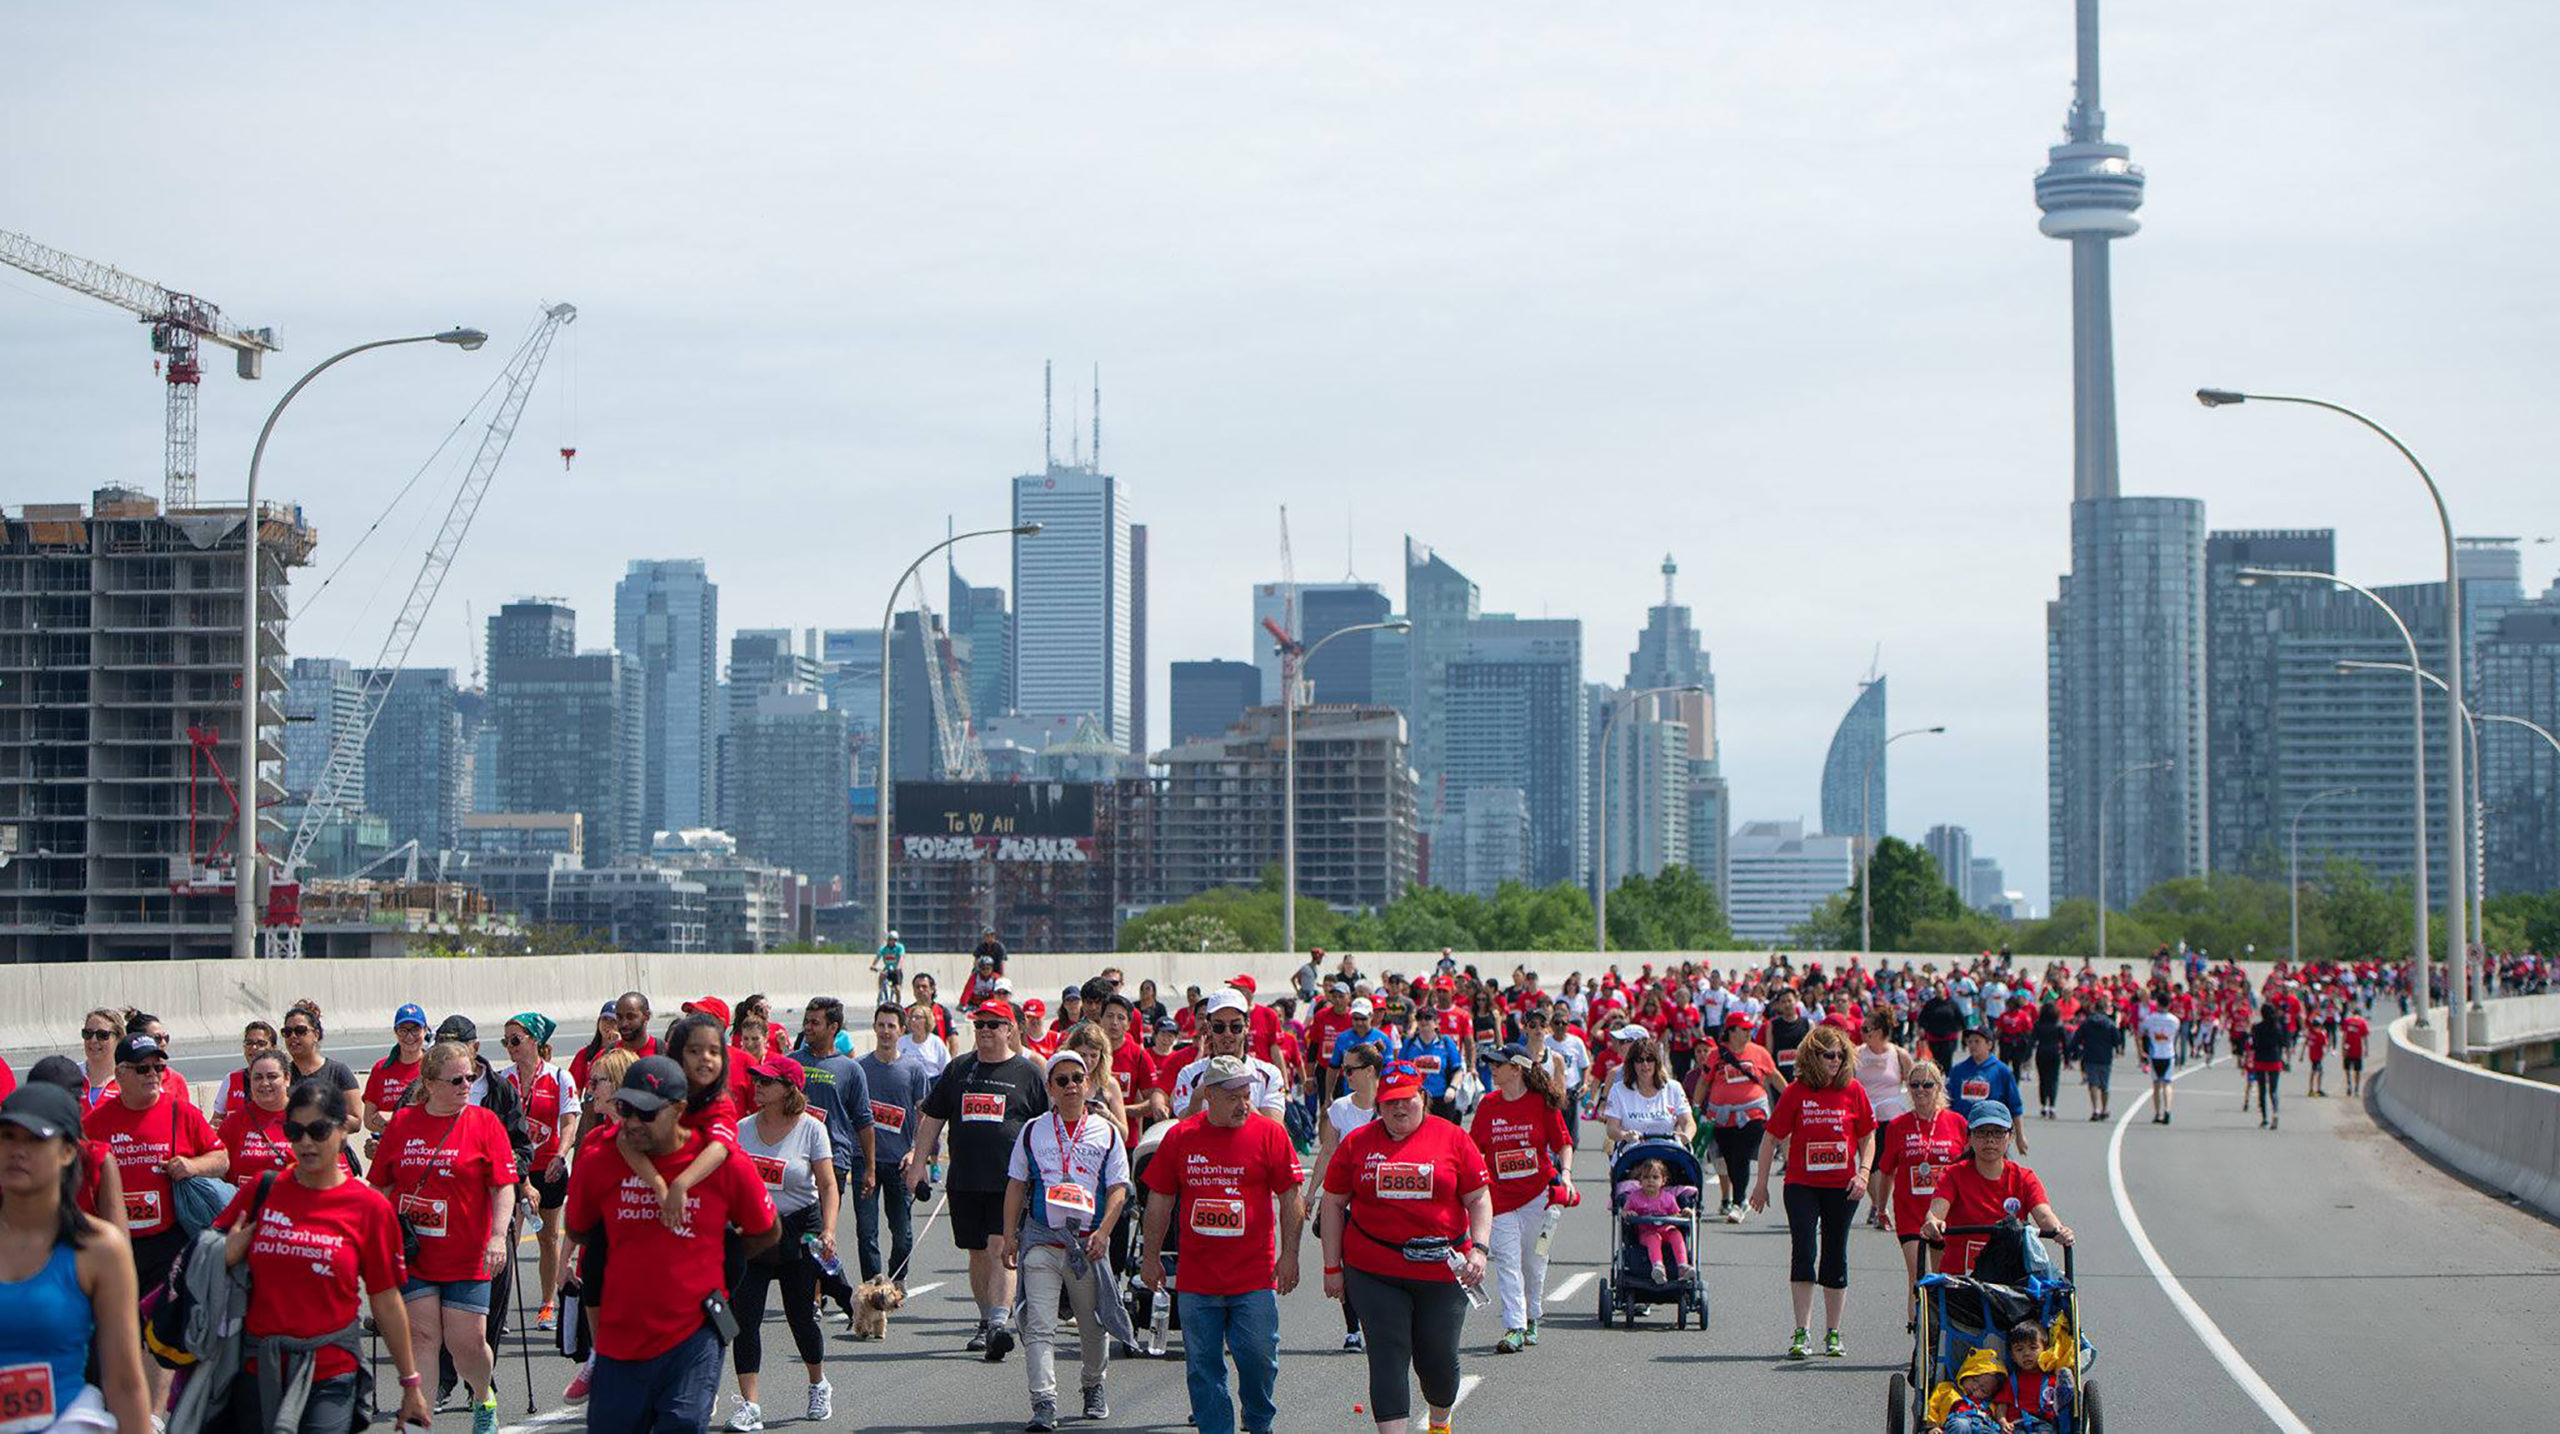 Heart Stroke Foundation Ride For Heart scaled